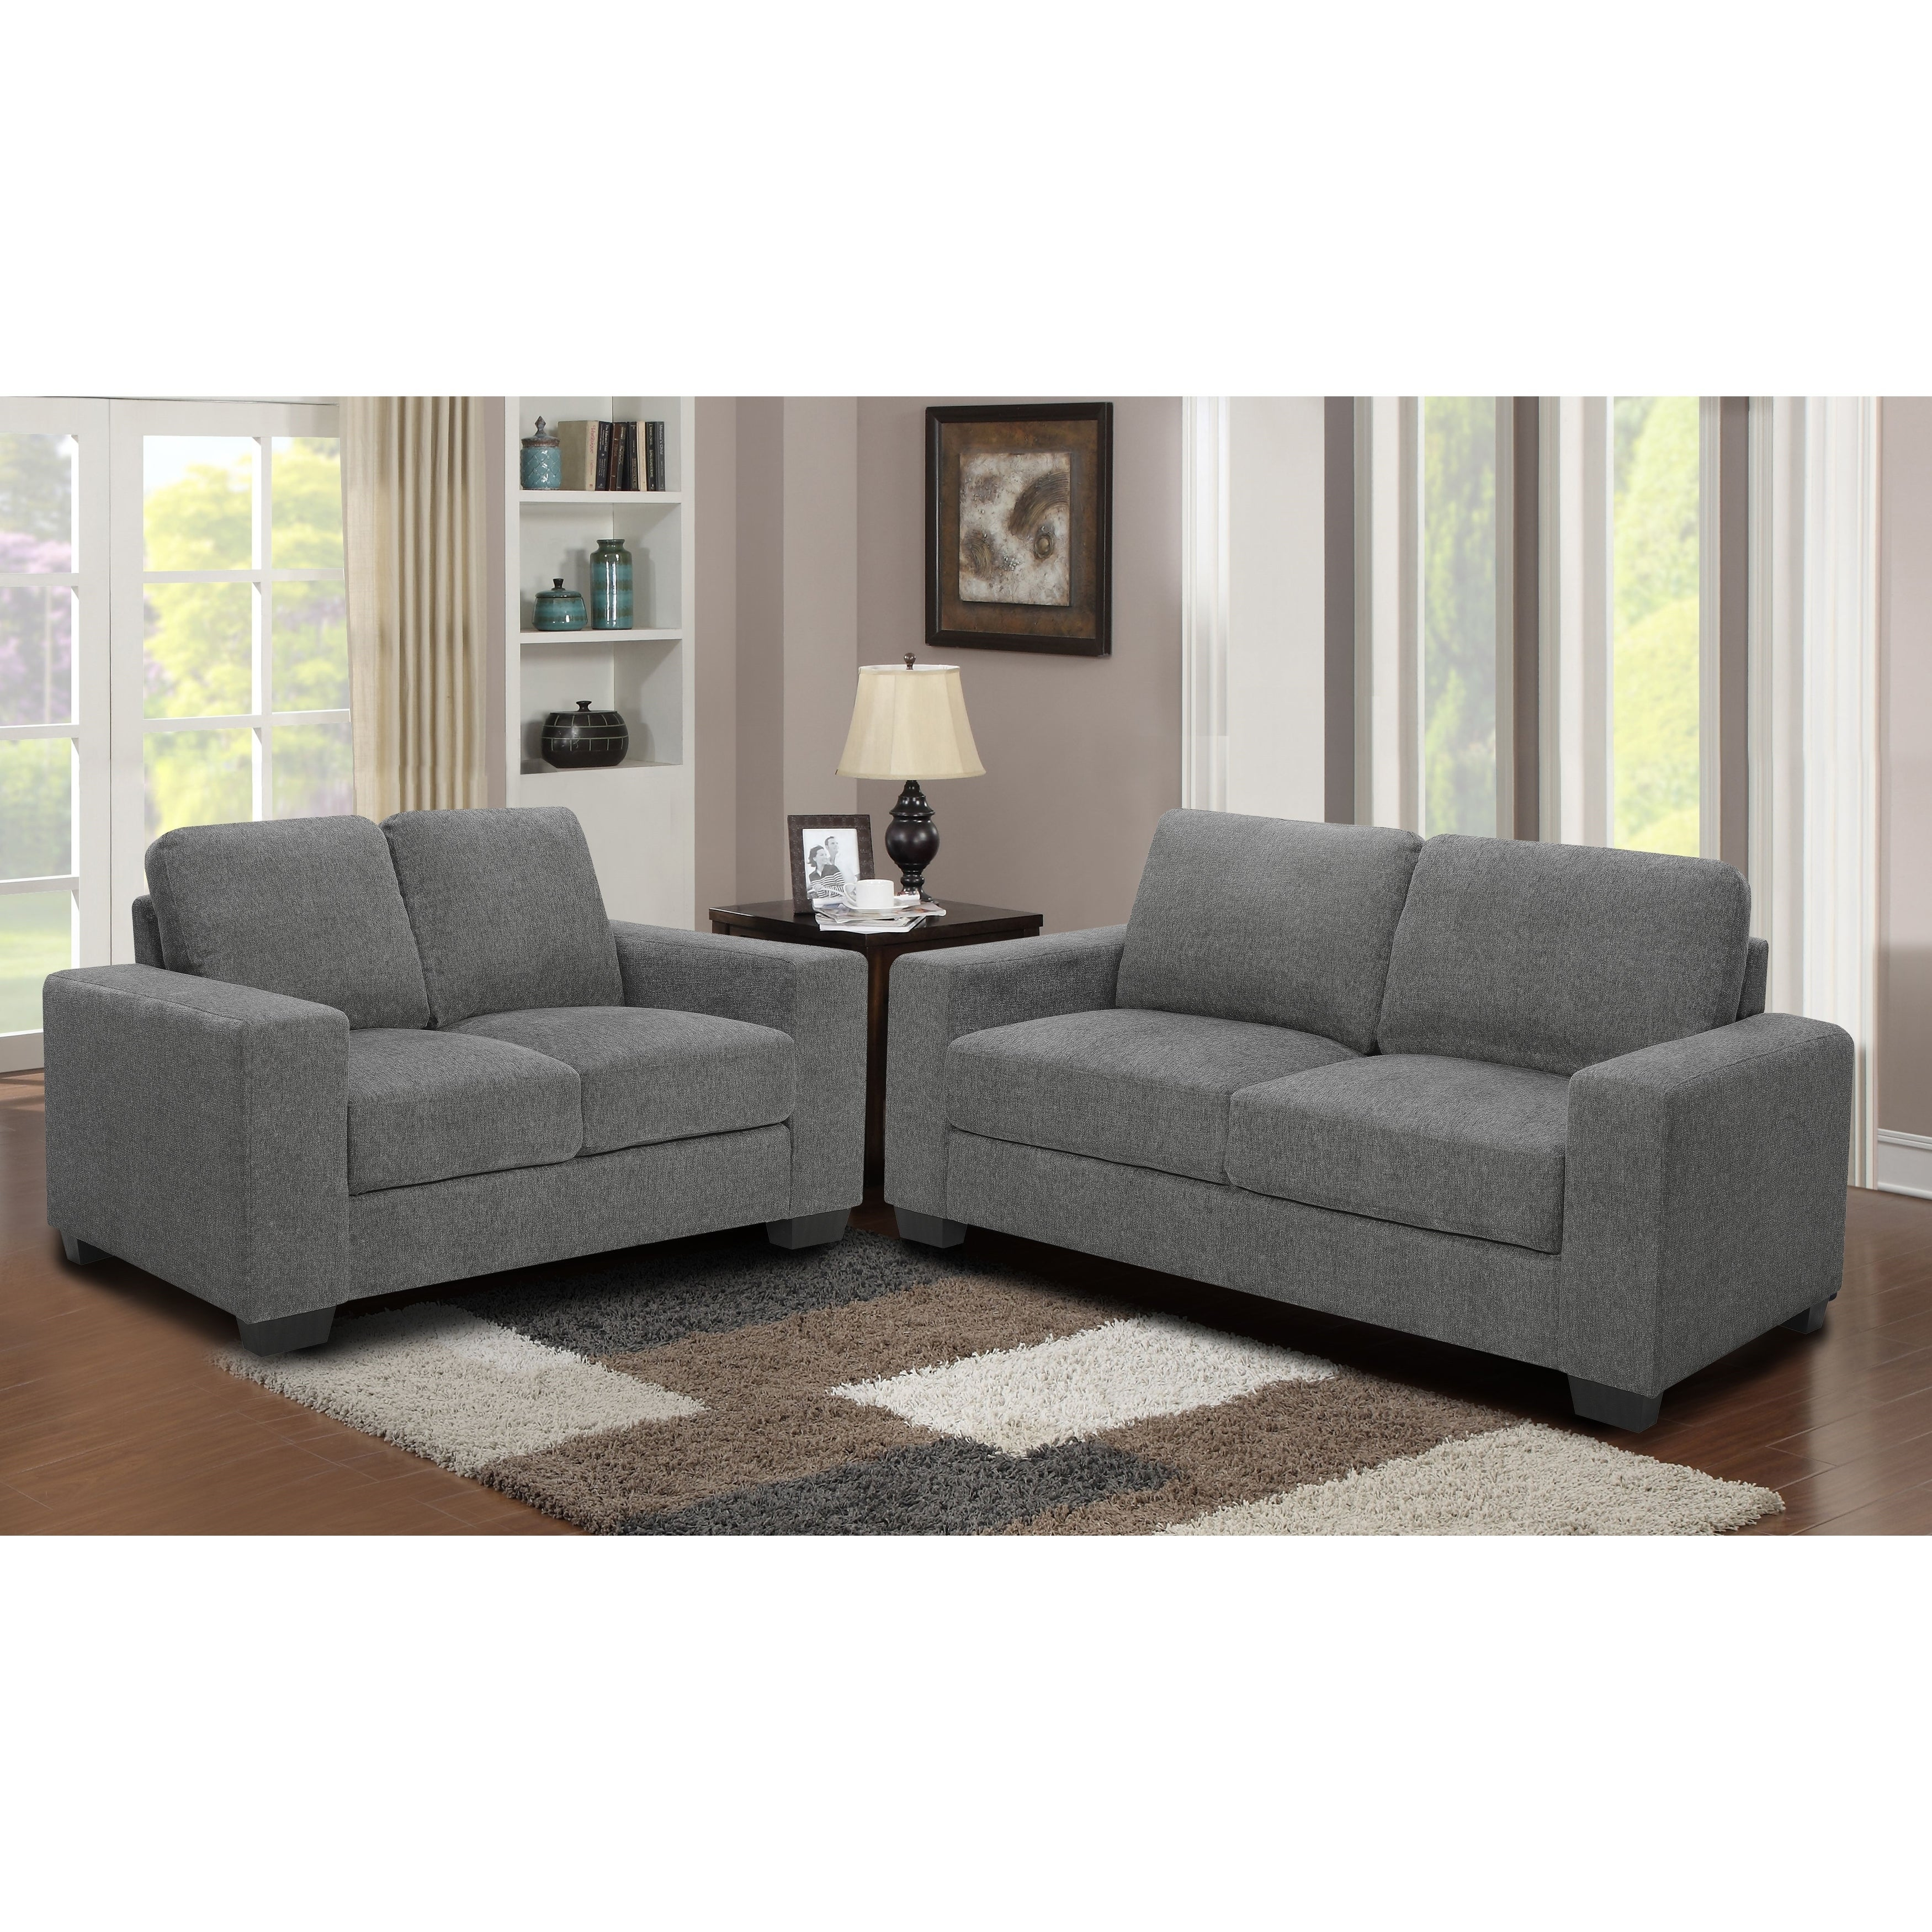 Shop 2pc grey microfiber sofa and loveseat living room set on sale free shipping today overstock com 26299050